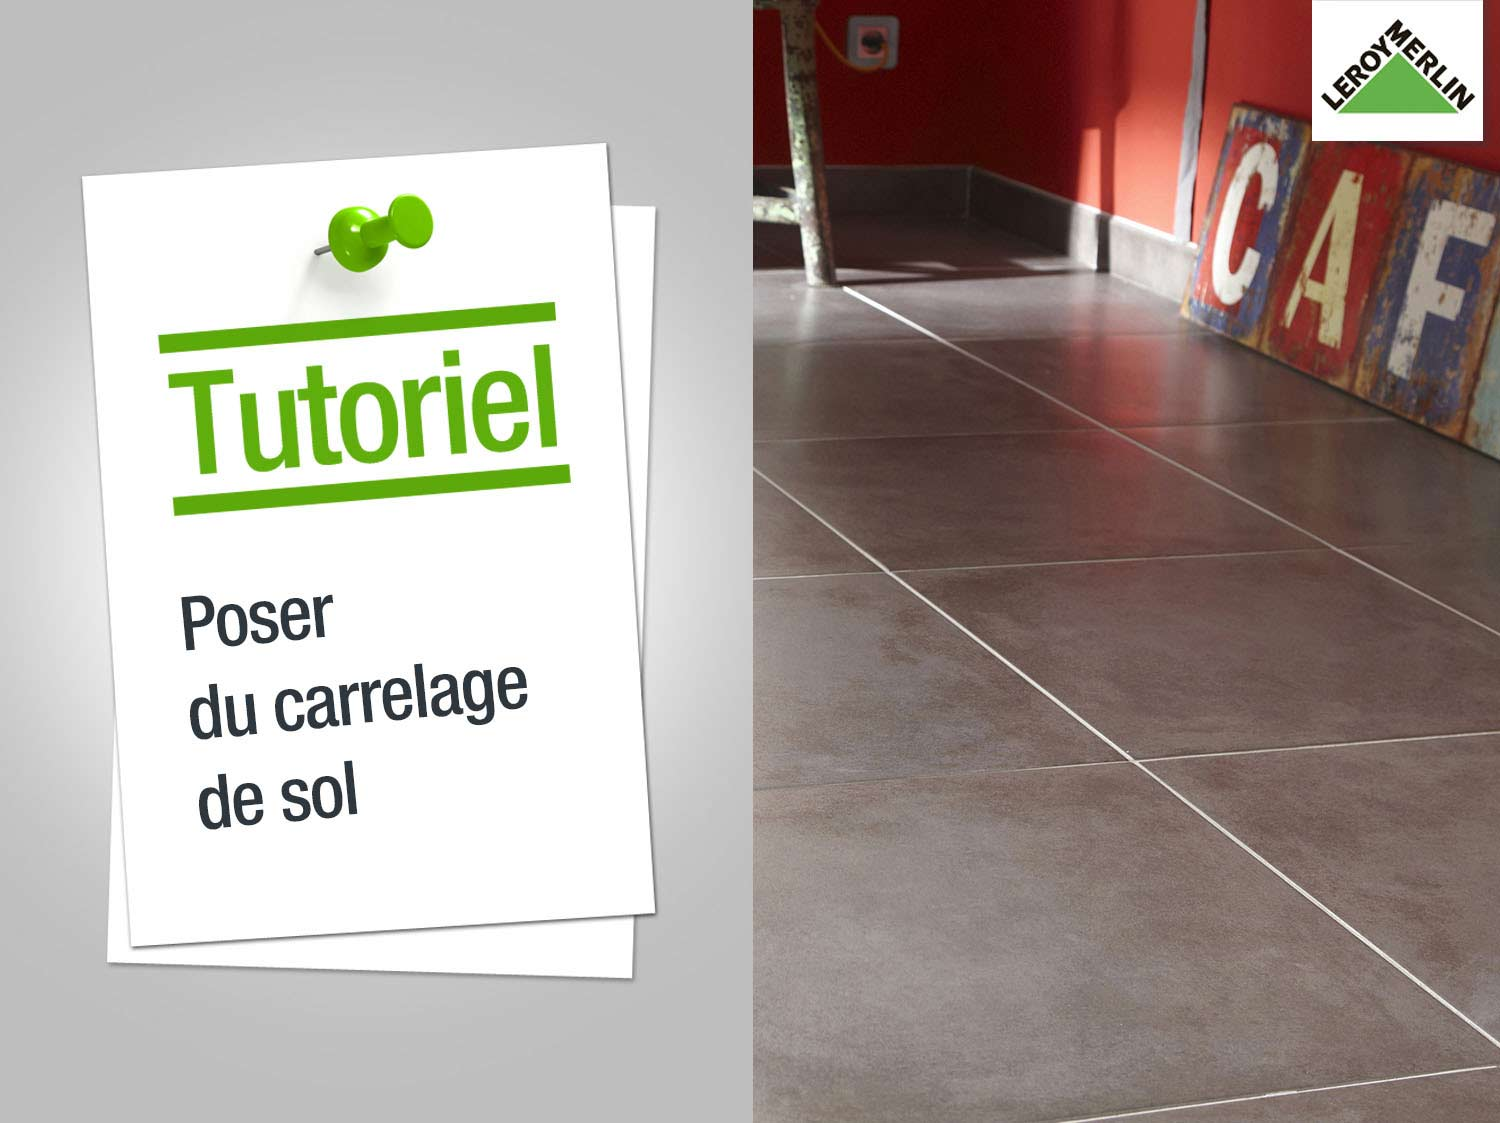 Que poser sur du carrelage for Peut on poser du carrelage sur du carrelage